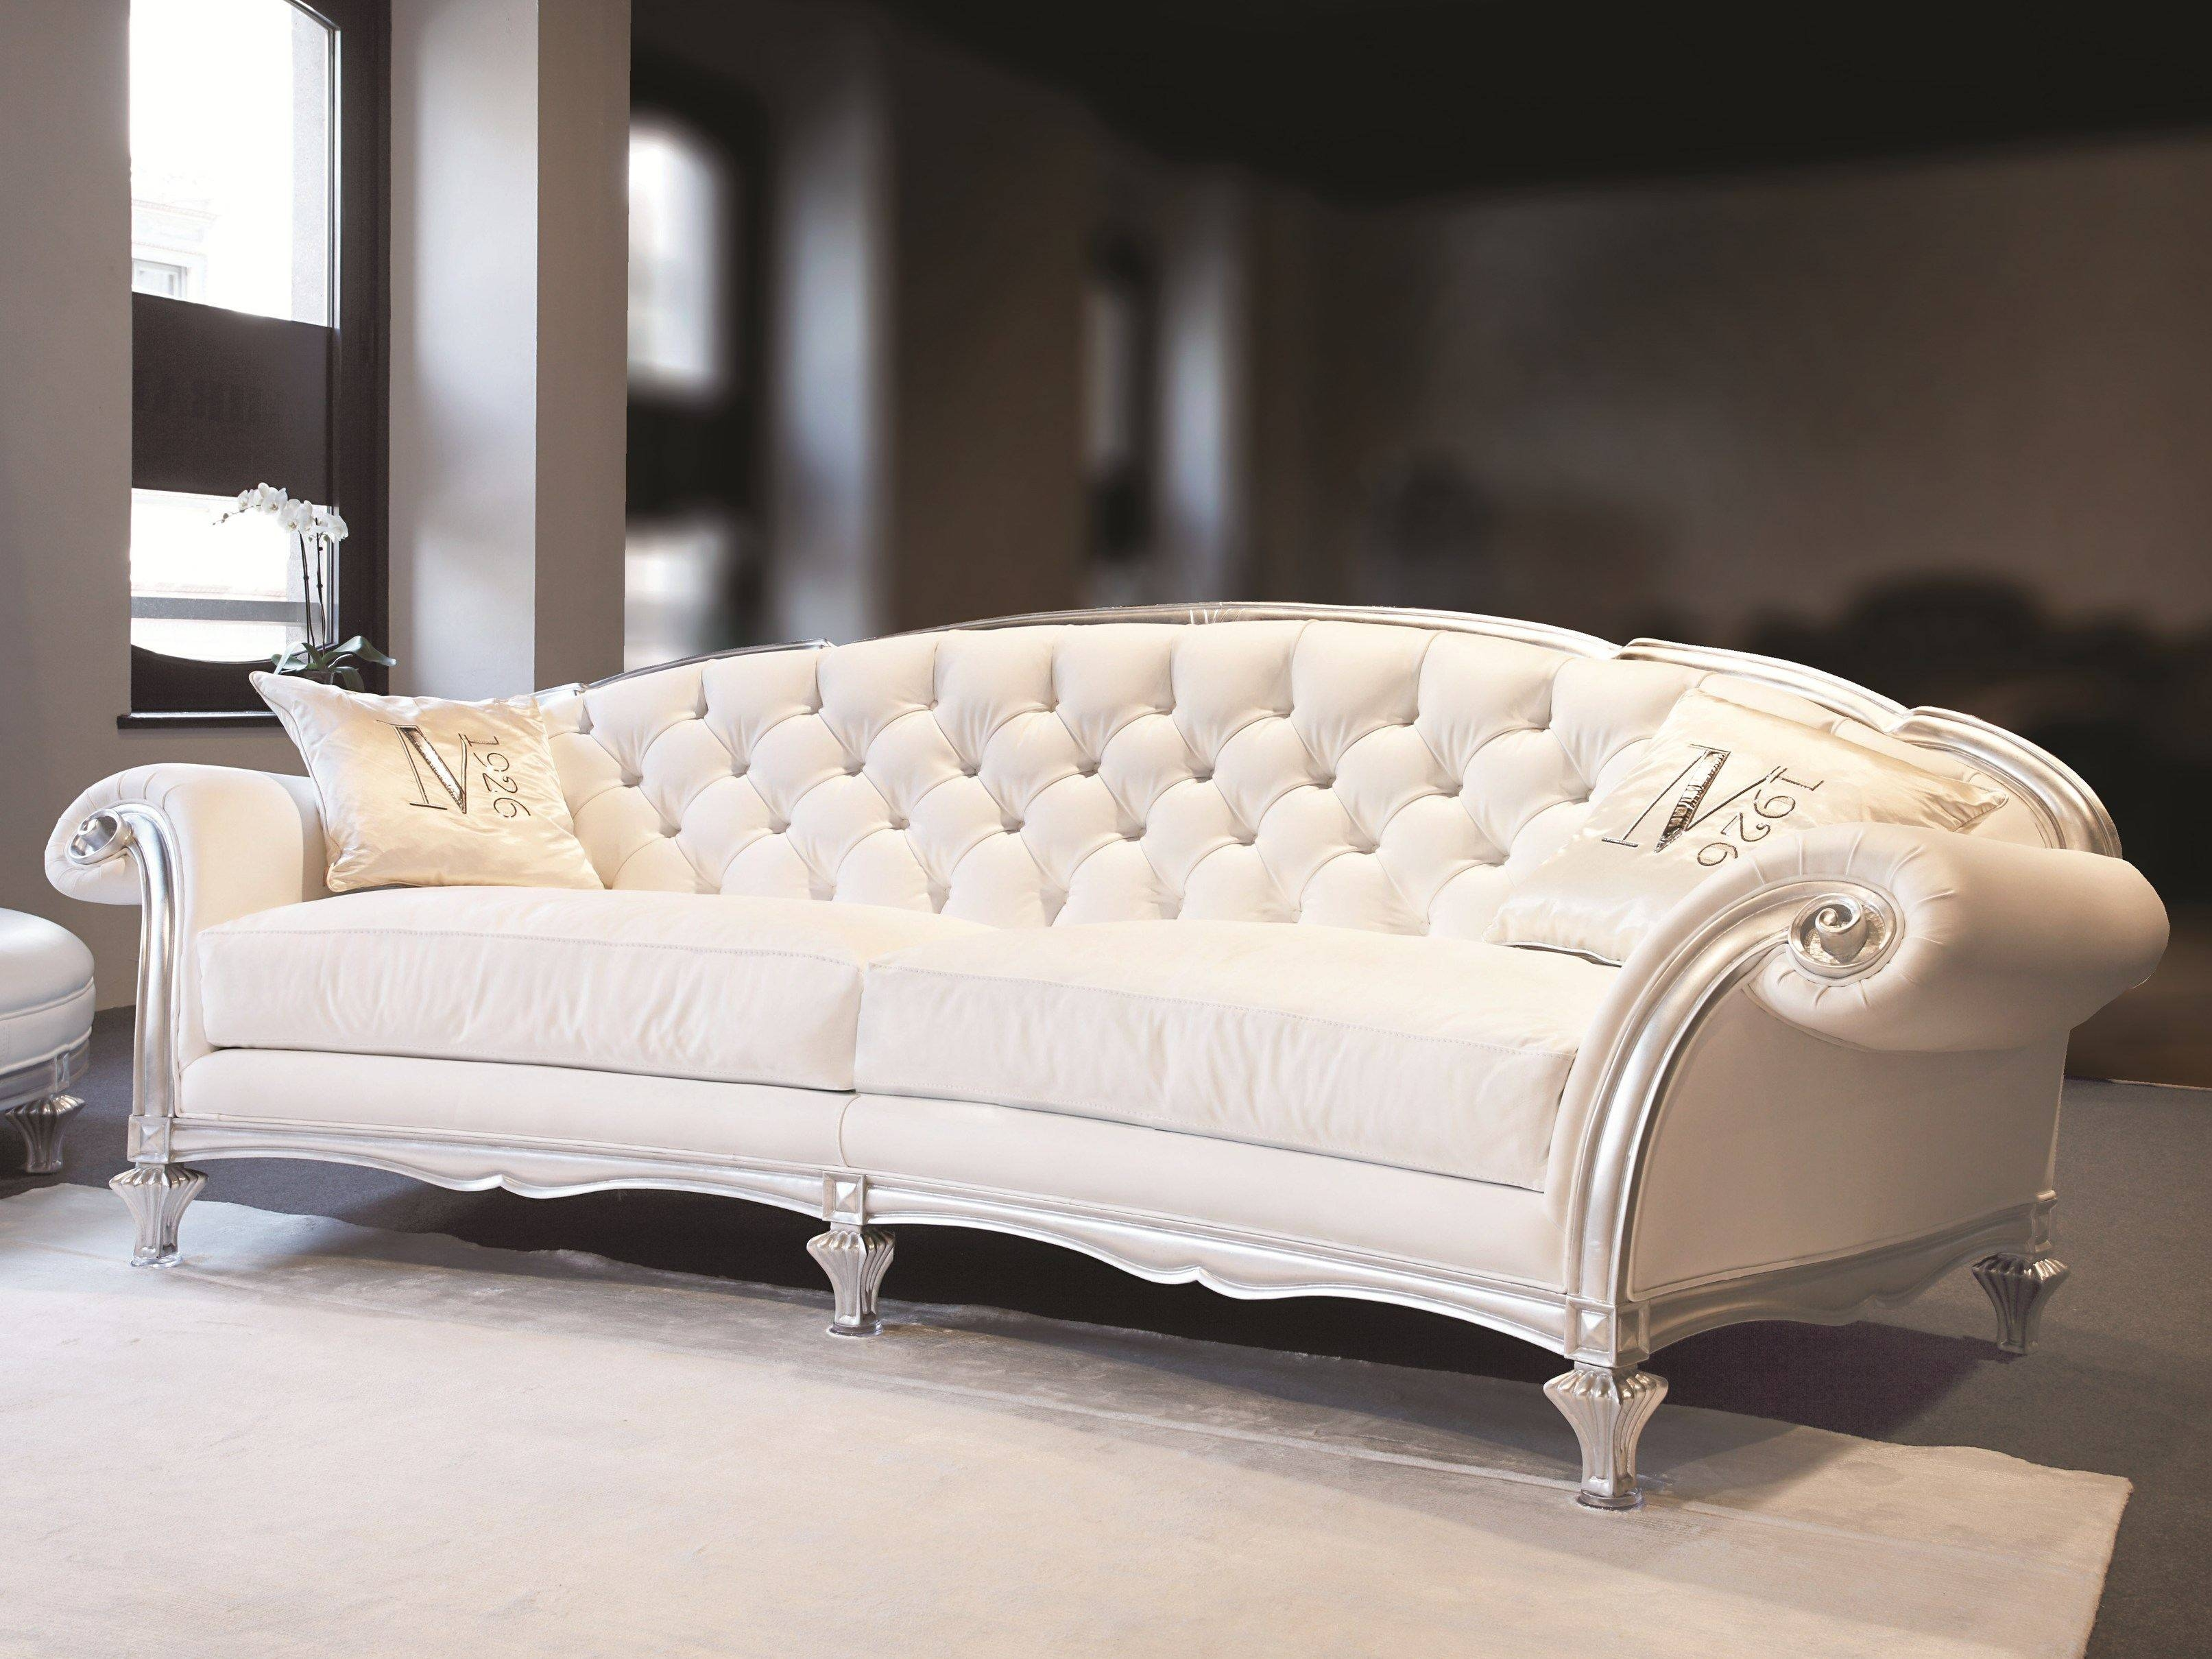 Elegant Antique Tufted Sofa As White Elegant Chairs With Silver throughout Silver Tufted Sofas (Image 4 of 15)